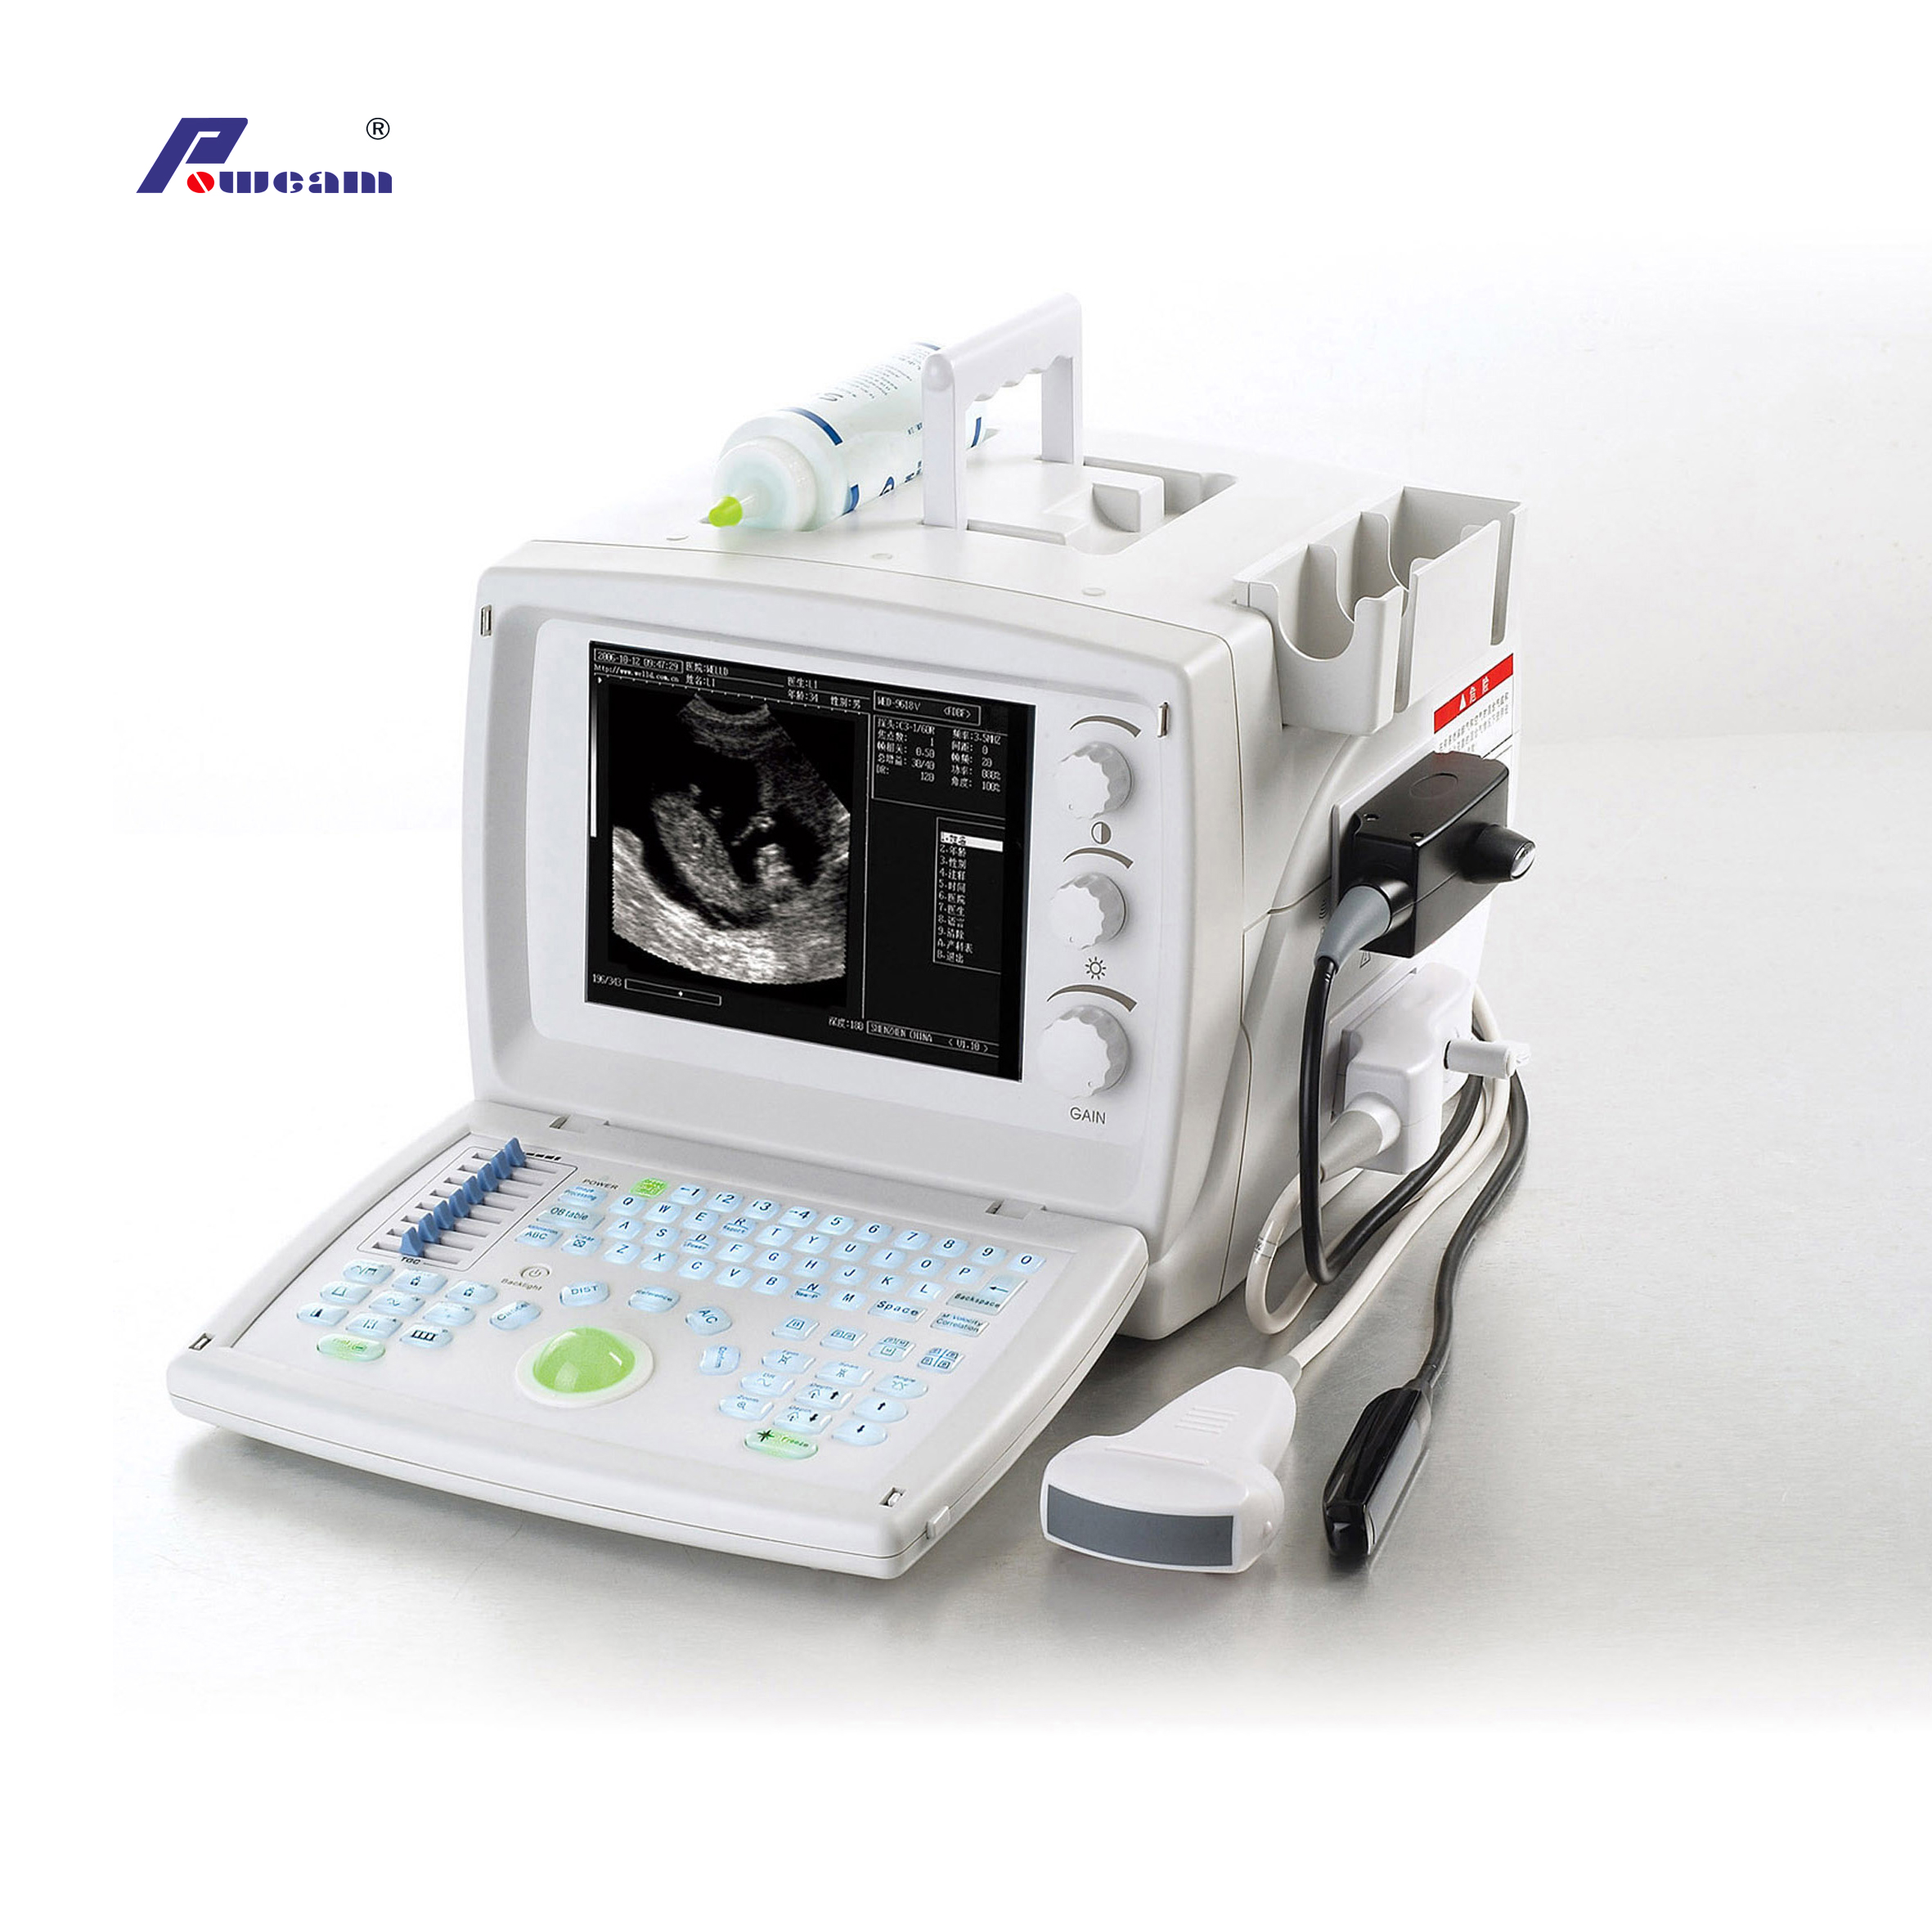 Digital Portable Veterinary Ultrasound